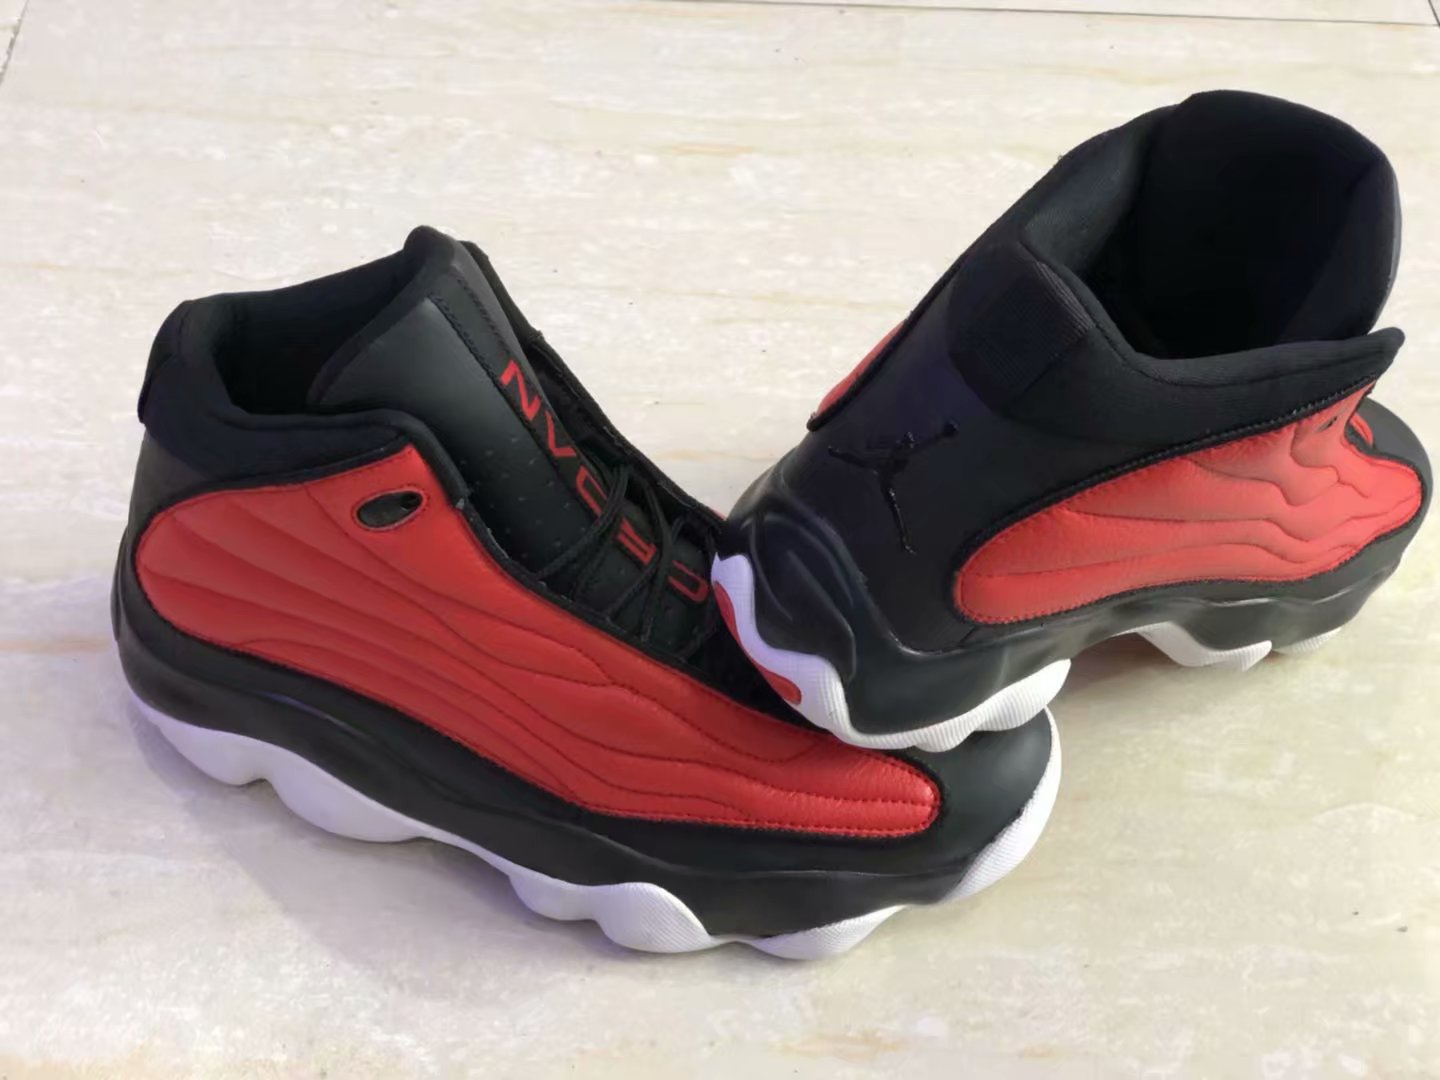 New Air Jordan 13.5 Red Black Shoes